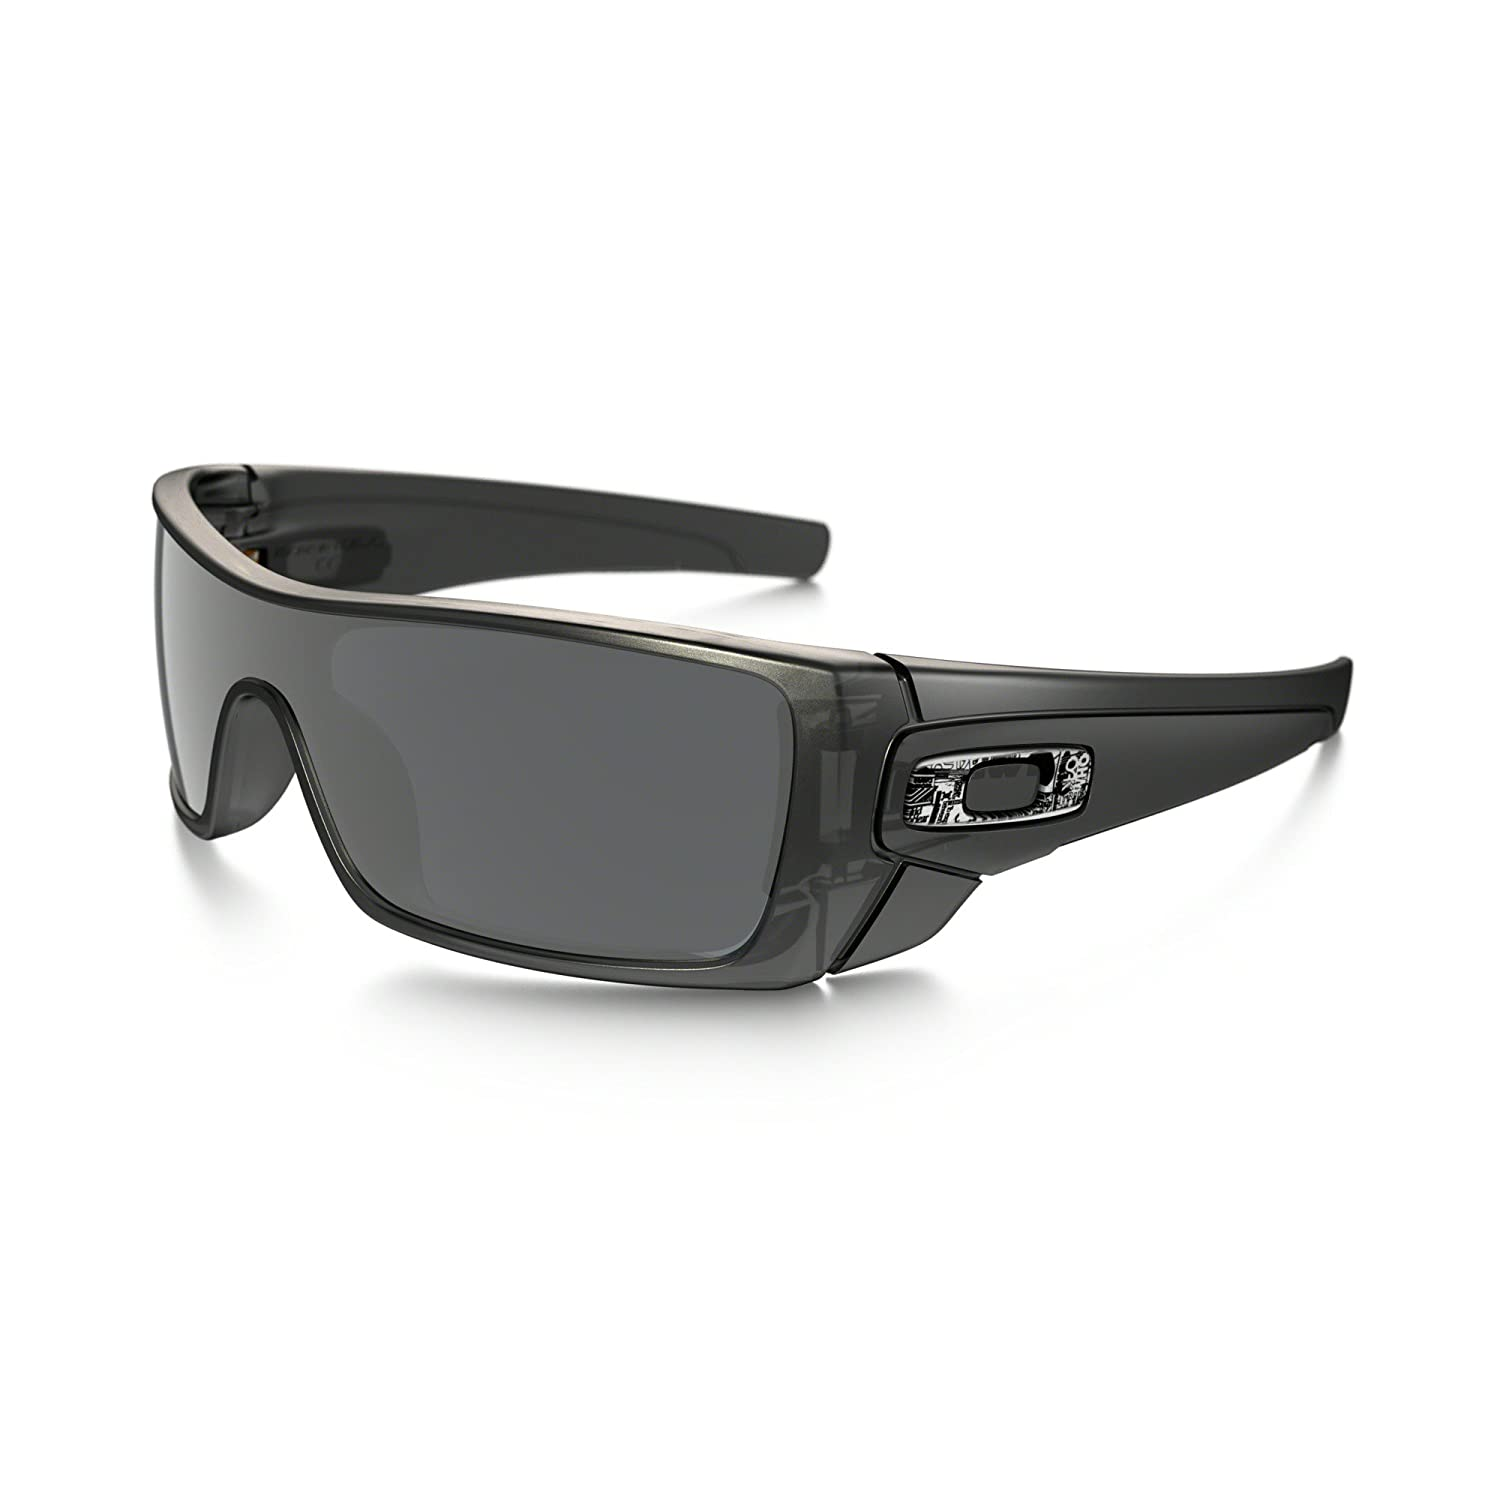 oakley batwolf mask sunglasses  oakley batwolf men's lifestyle casual wear sunglasses